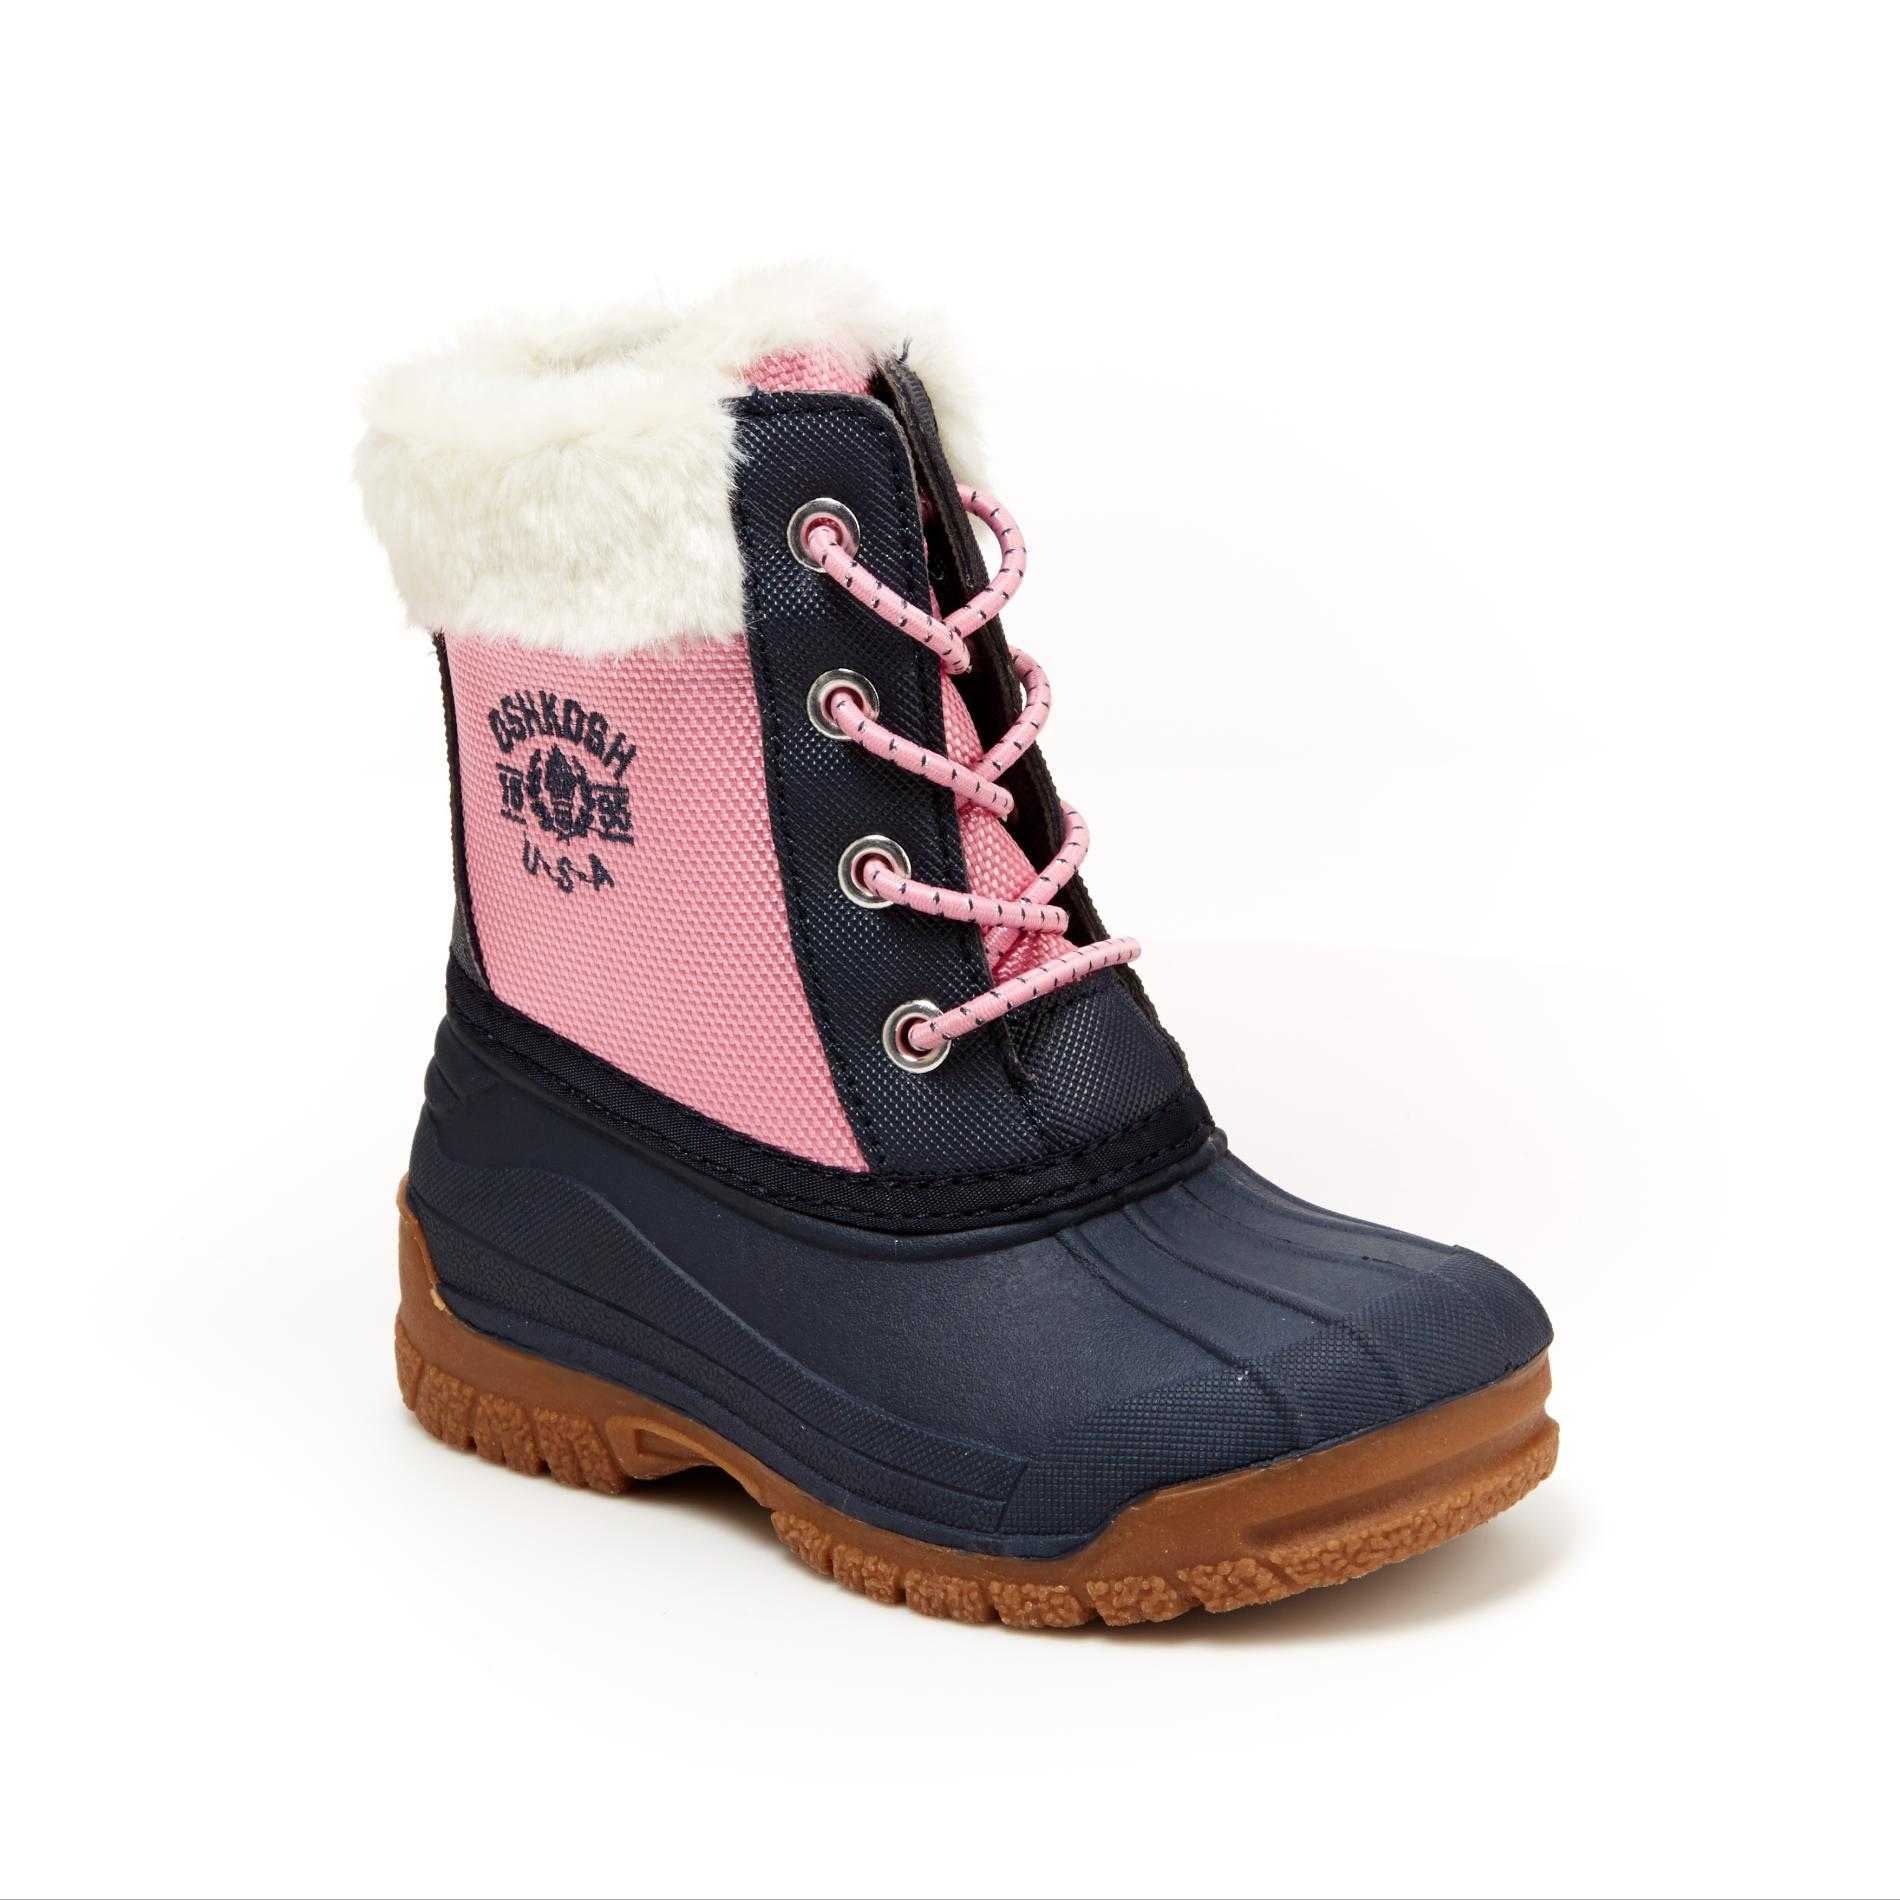 Shoes & Accessories Shoes. Accessories. Cold Weather Accessories. Jewelry. Beauty. Deals Old Navy Logo for the Family. Shop By Size Shop By Size. Old Navy Active Activewear by Style. Toddler Girls 12M-6T. Toddler Boys 12M-6T. Toddler Girls New & Now New Arrivals. All Dressed Up.